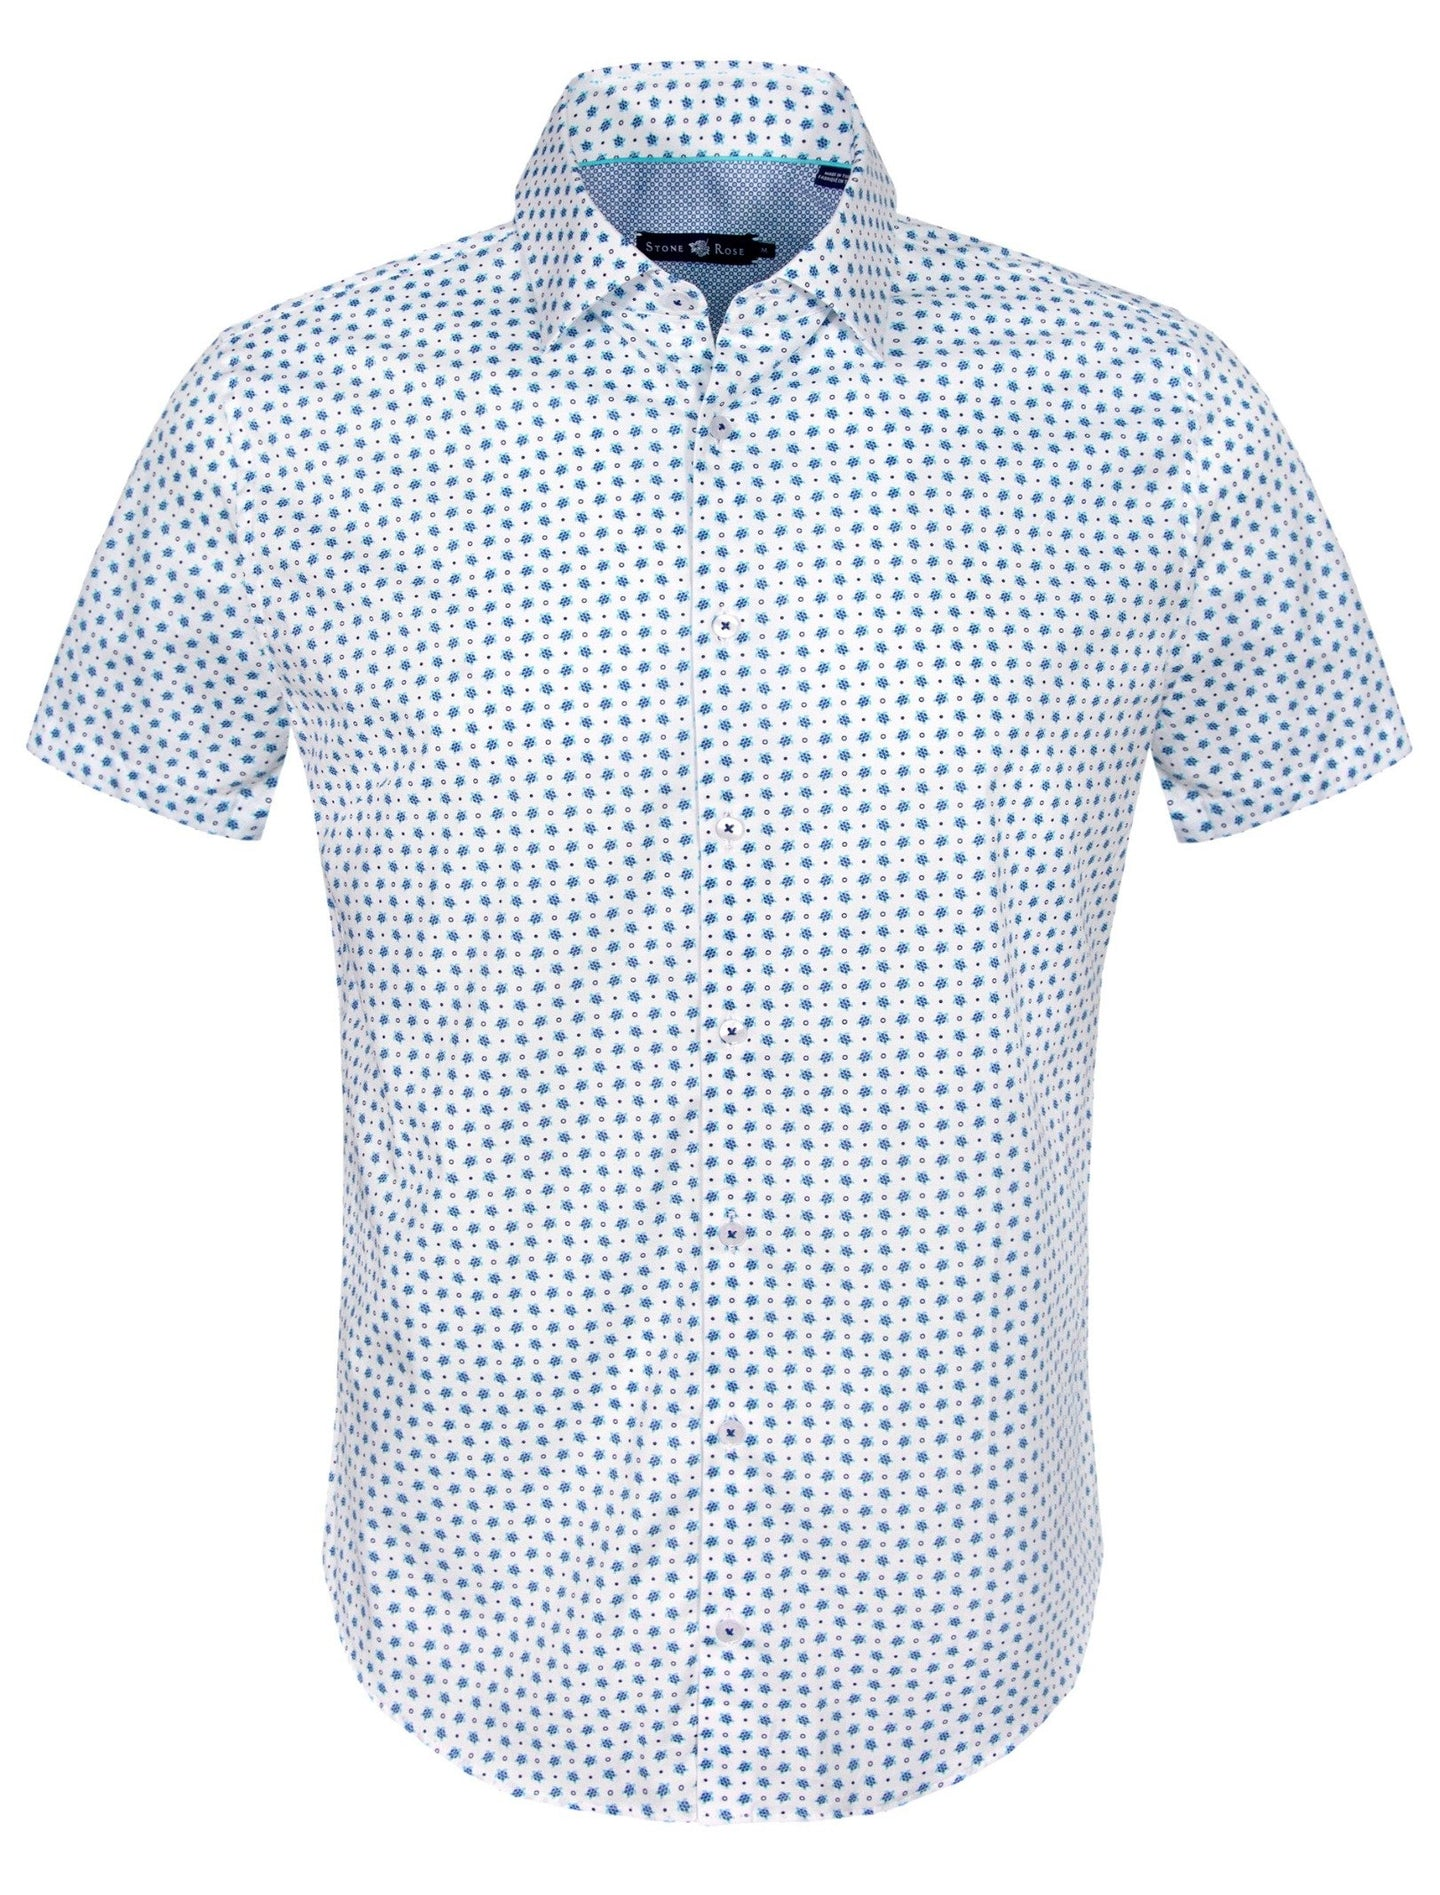 Turtle Print Sport Shirt - White